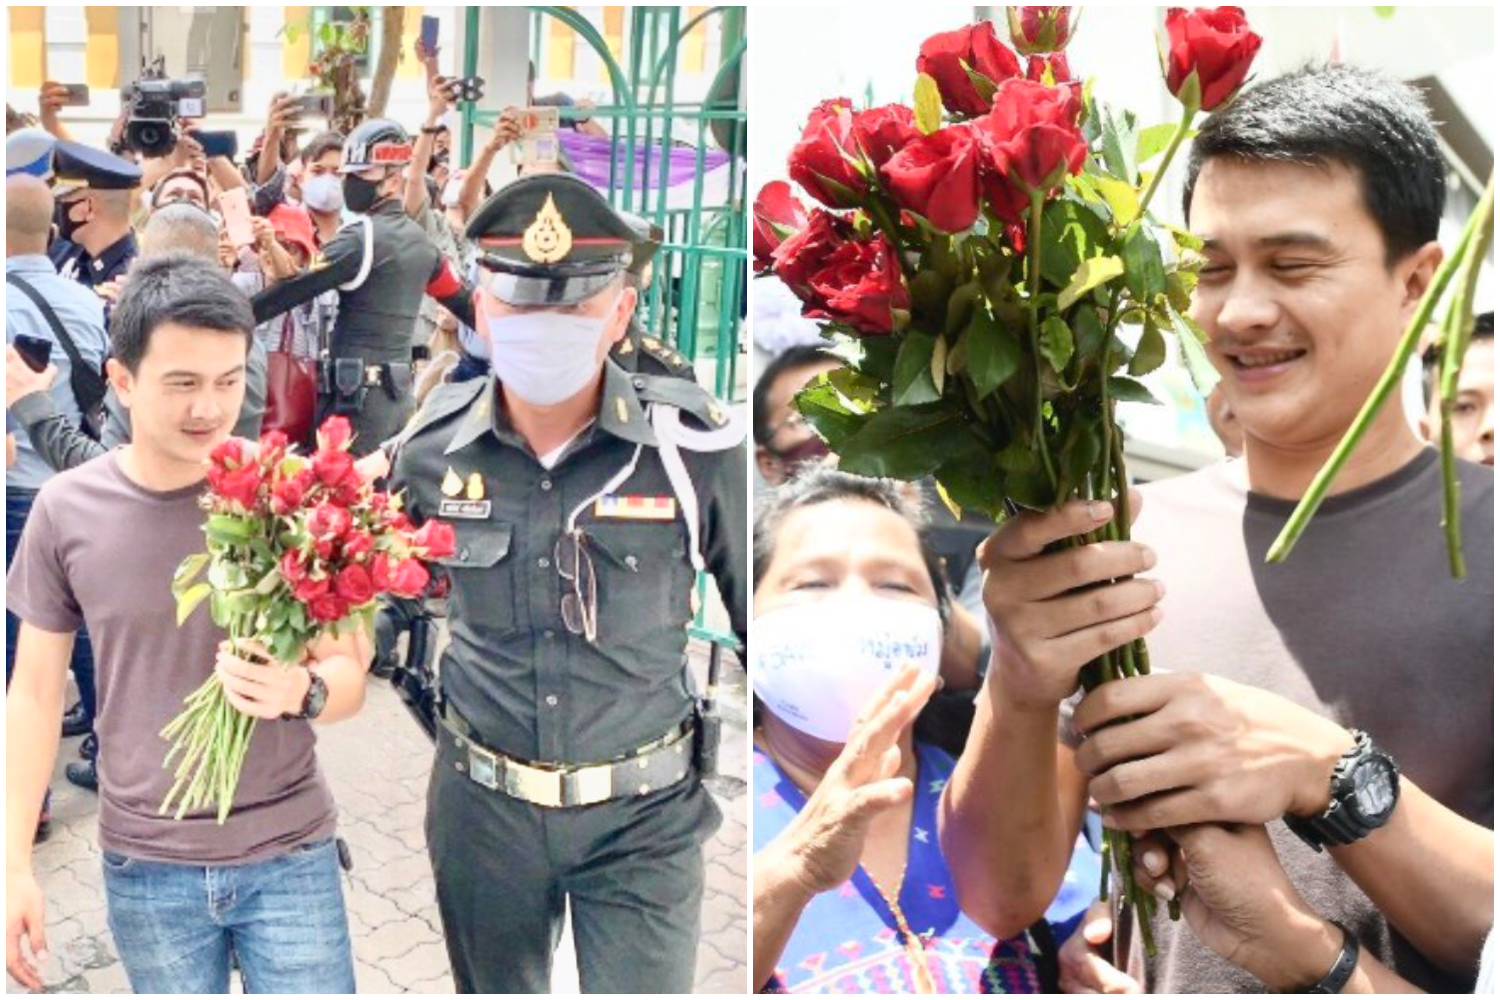 Sgt Narongchai Intarakawi is escorted to the Bangkok military court on Monday. Dozens of people came to give him moral support. (Photos by Wassana Nanuam)